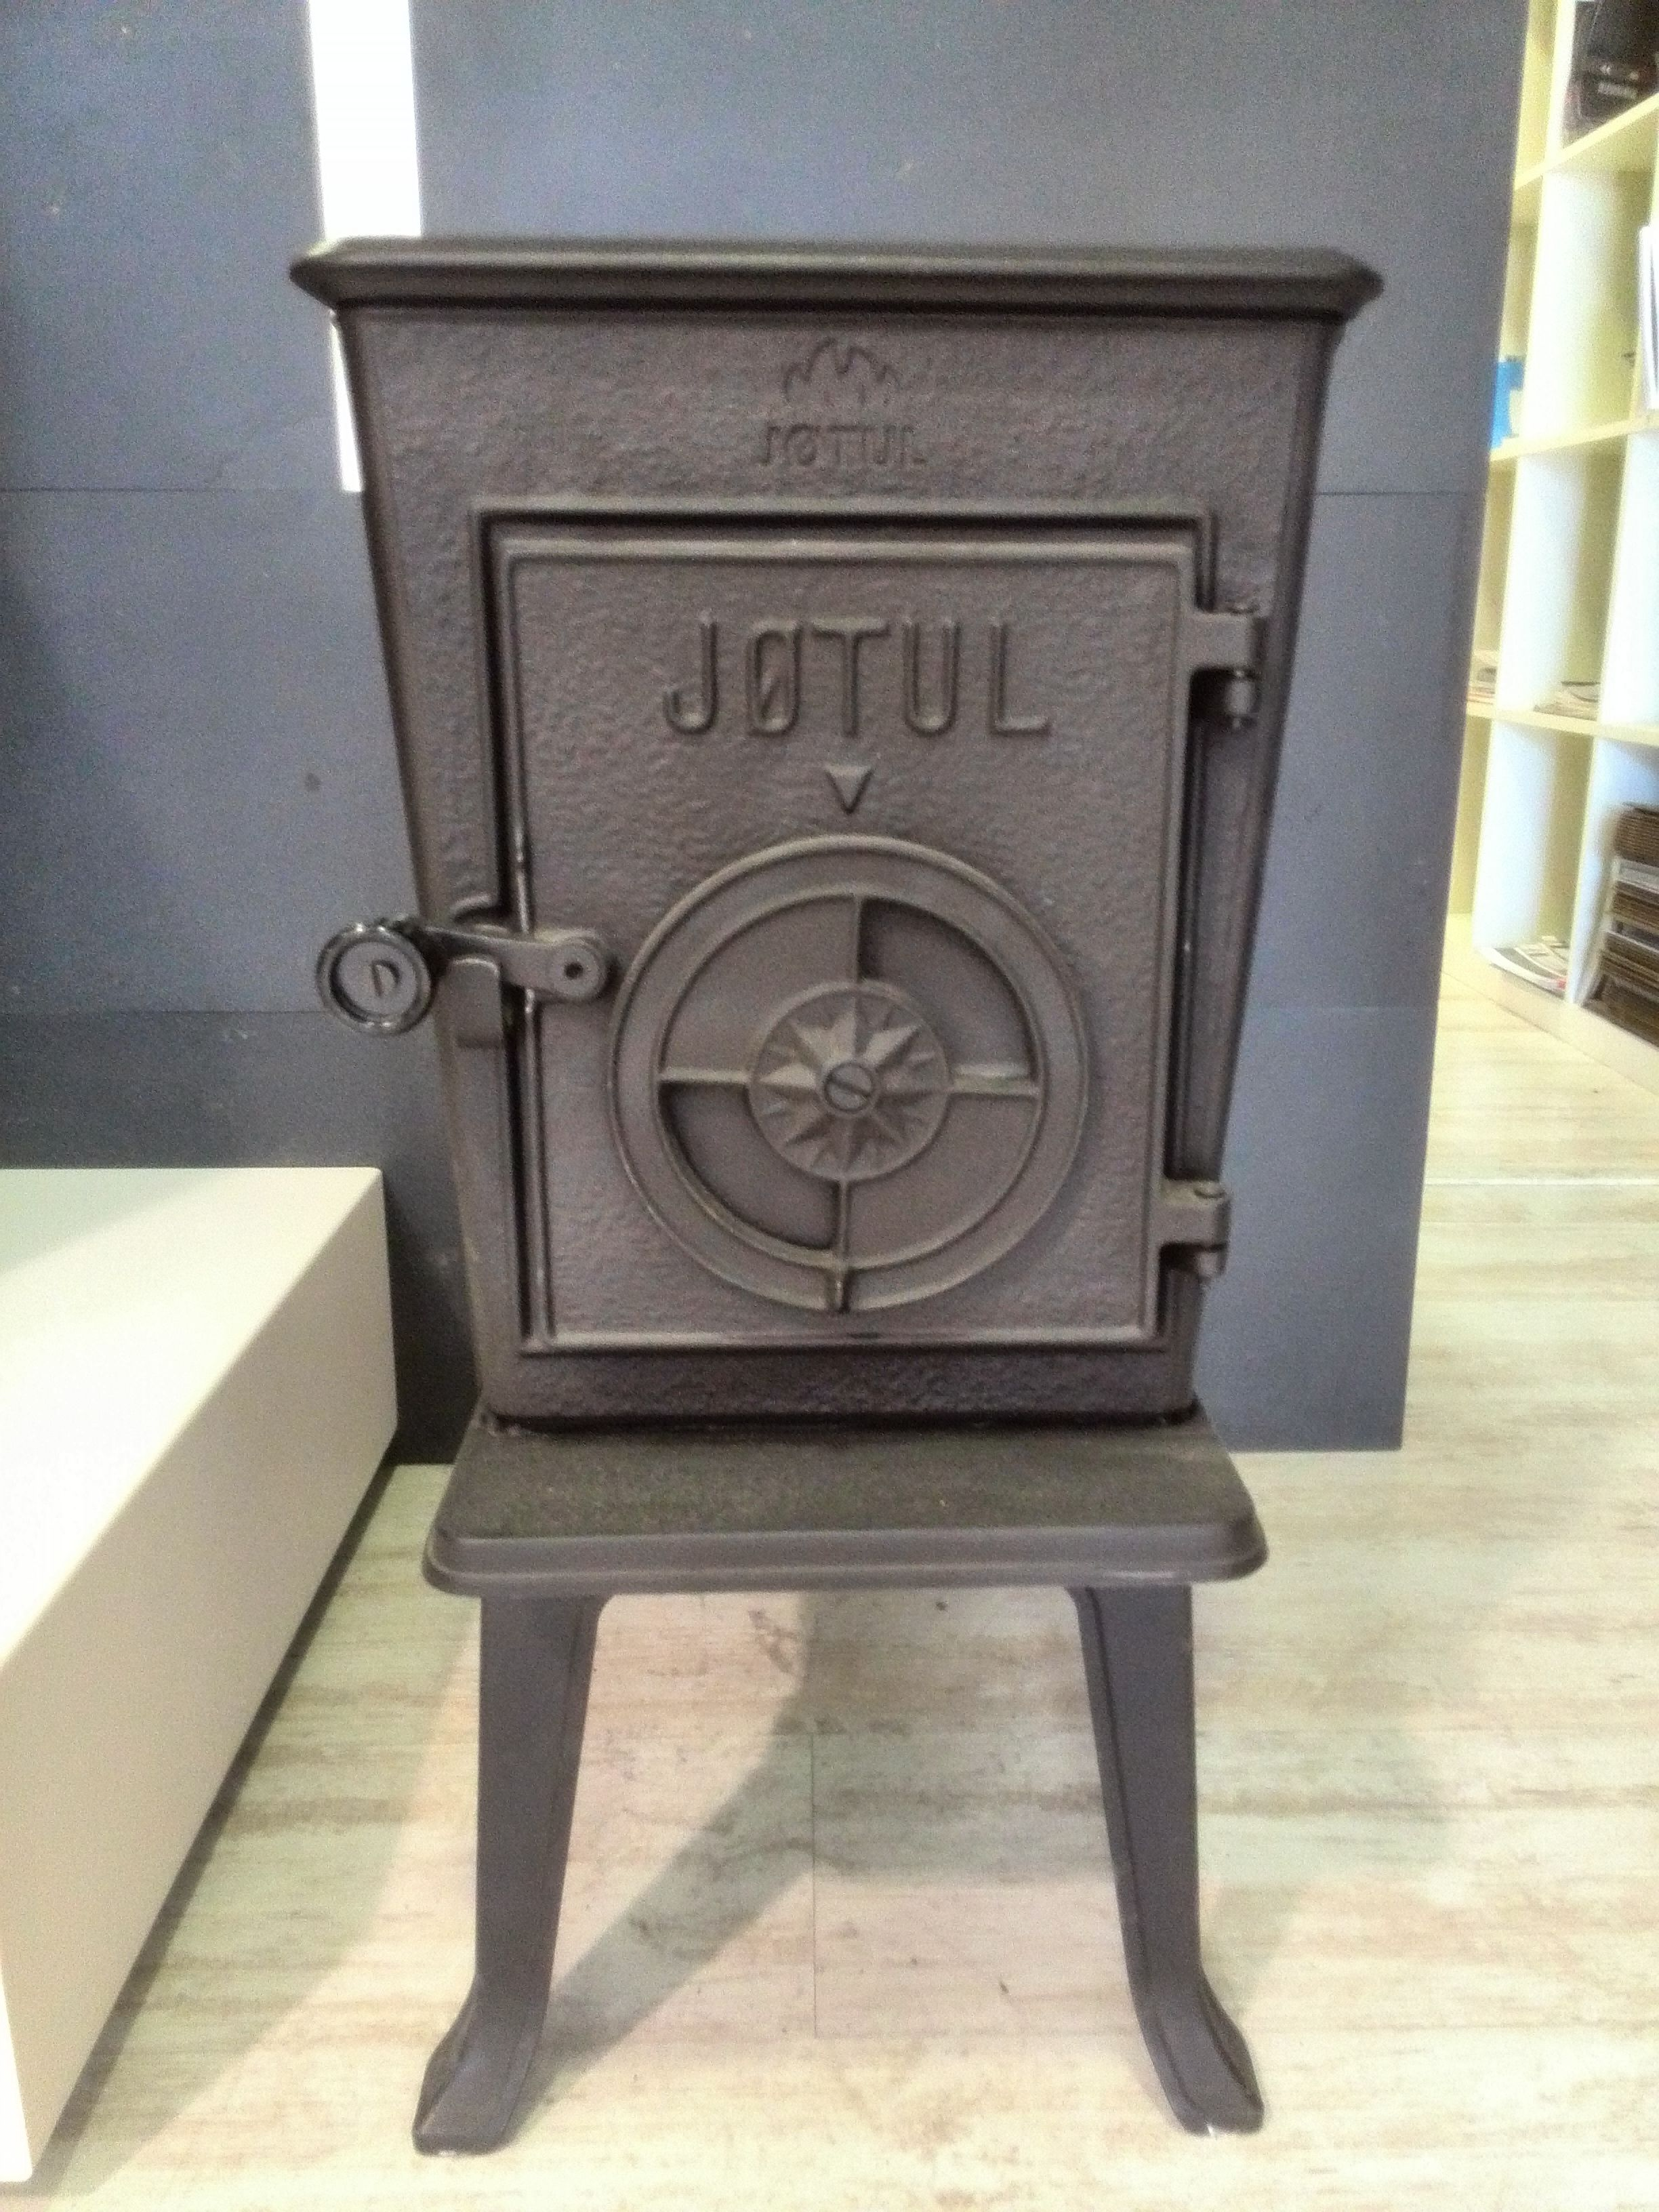 Jotul 606 take a look at the Jotul heritage - f602 still on ...